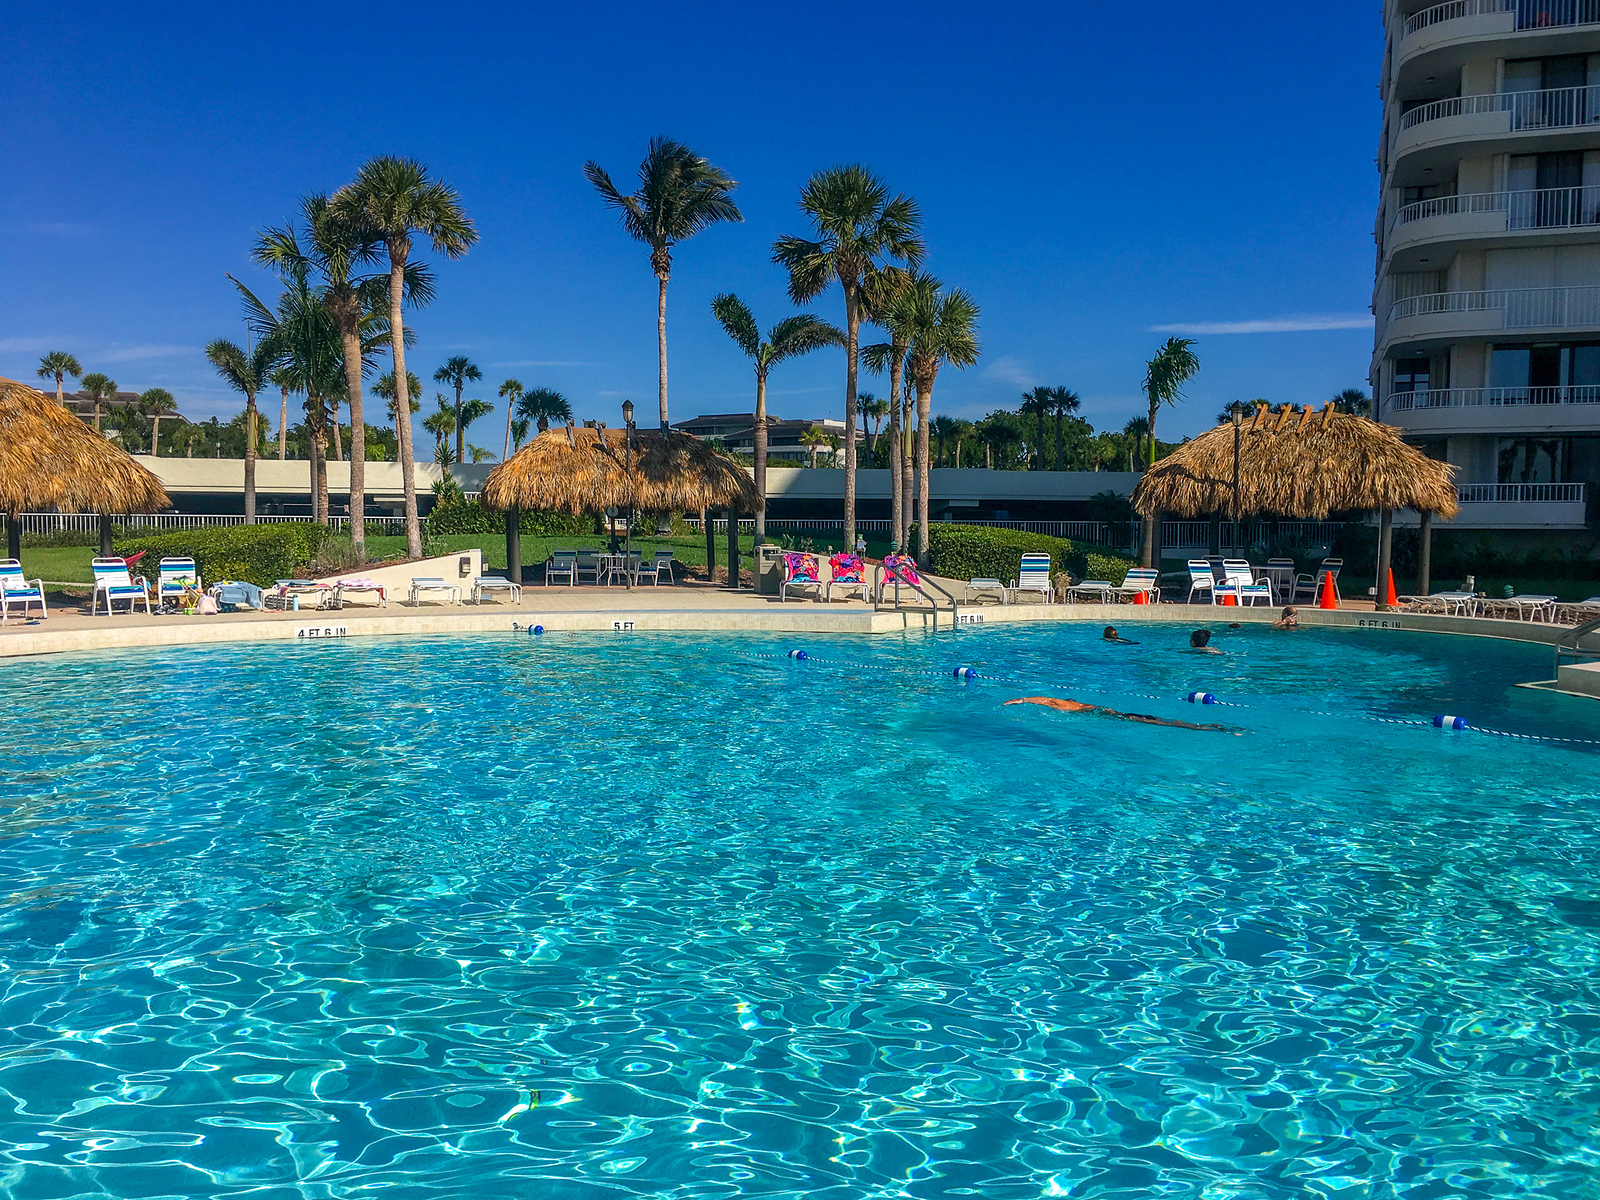 several marco island tours exist to help you on your stay. or just chill near the pool.